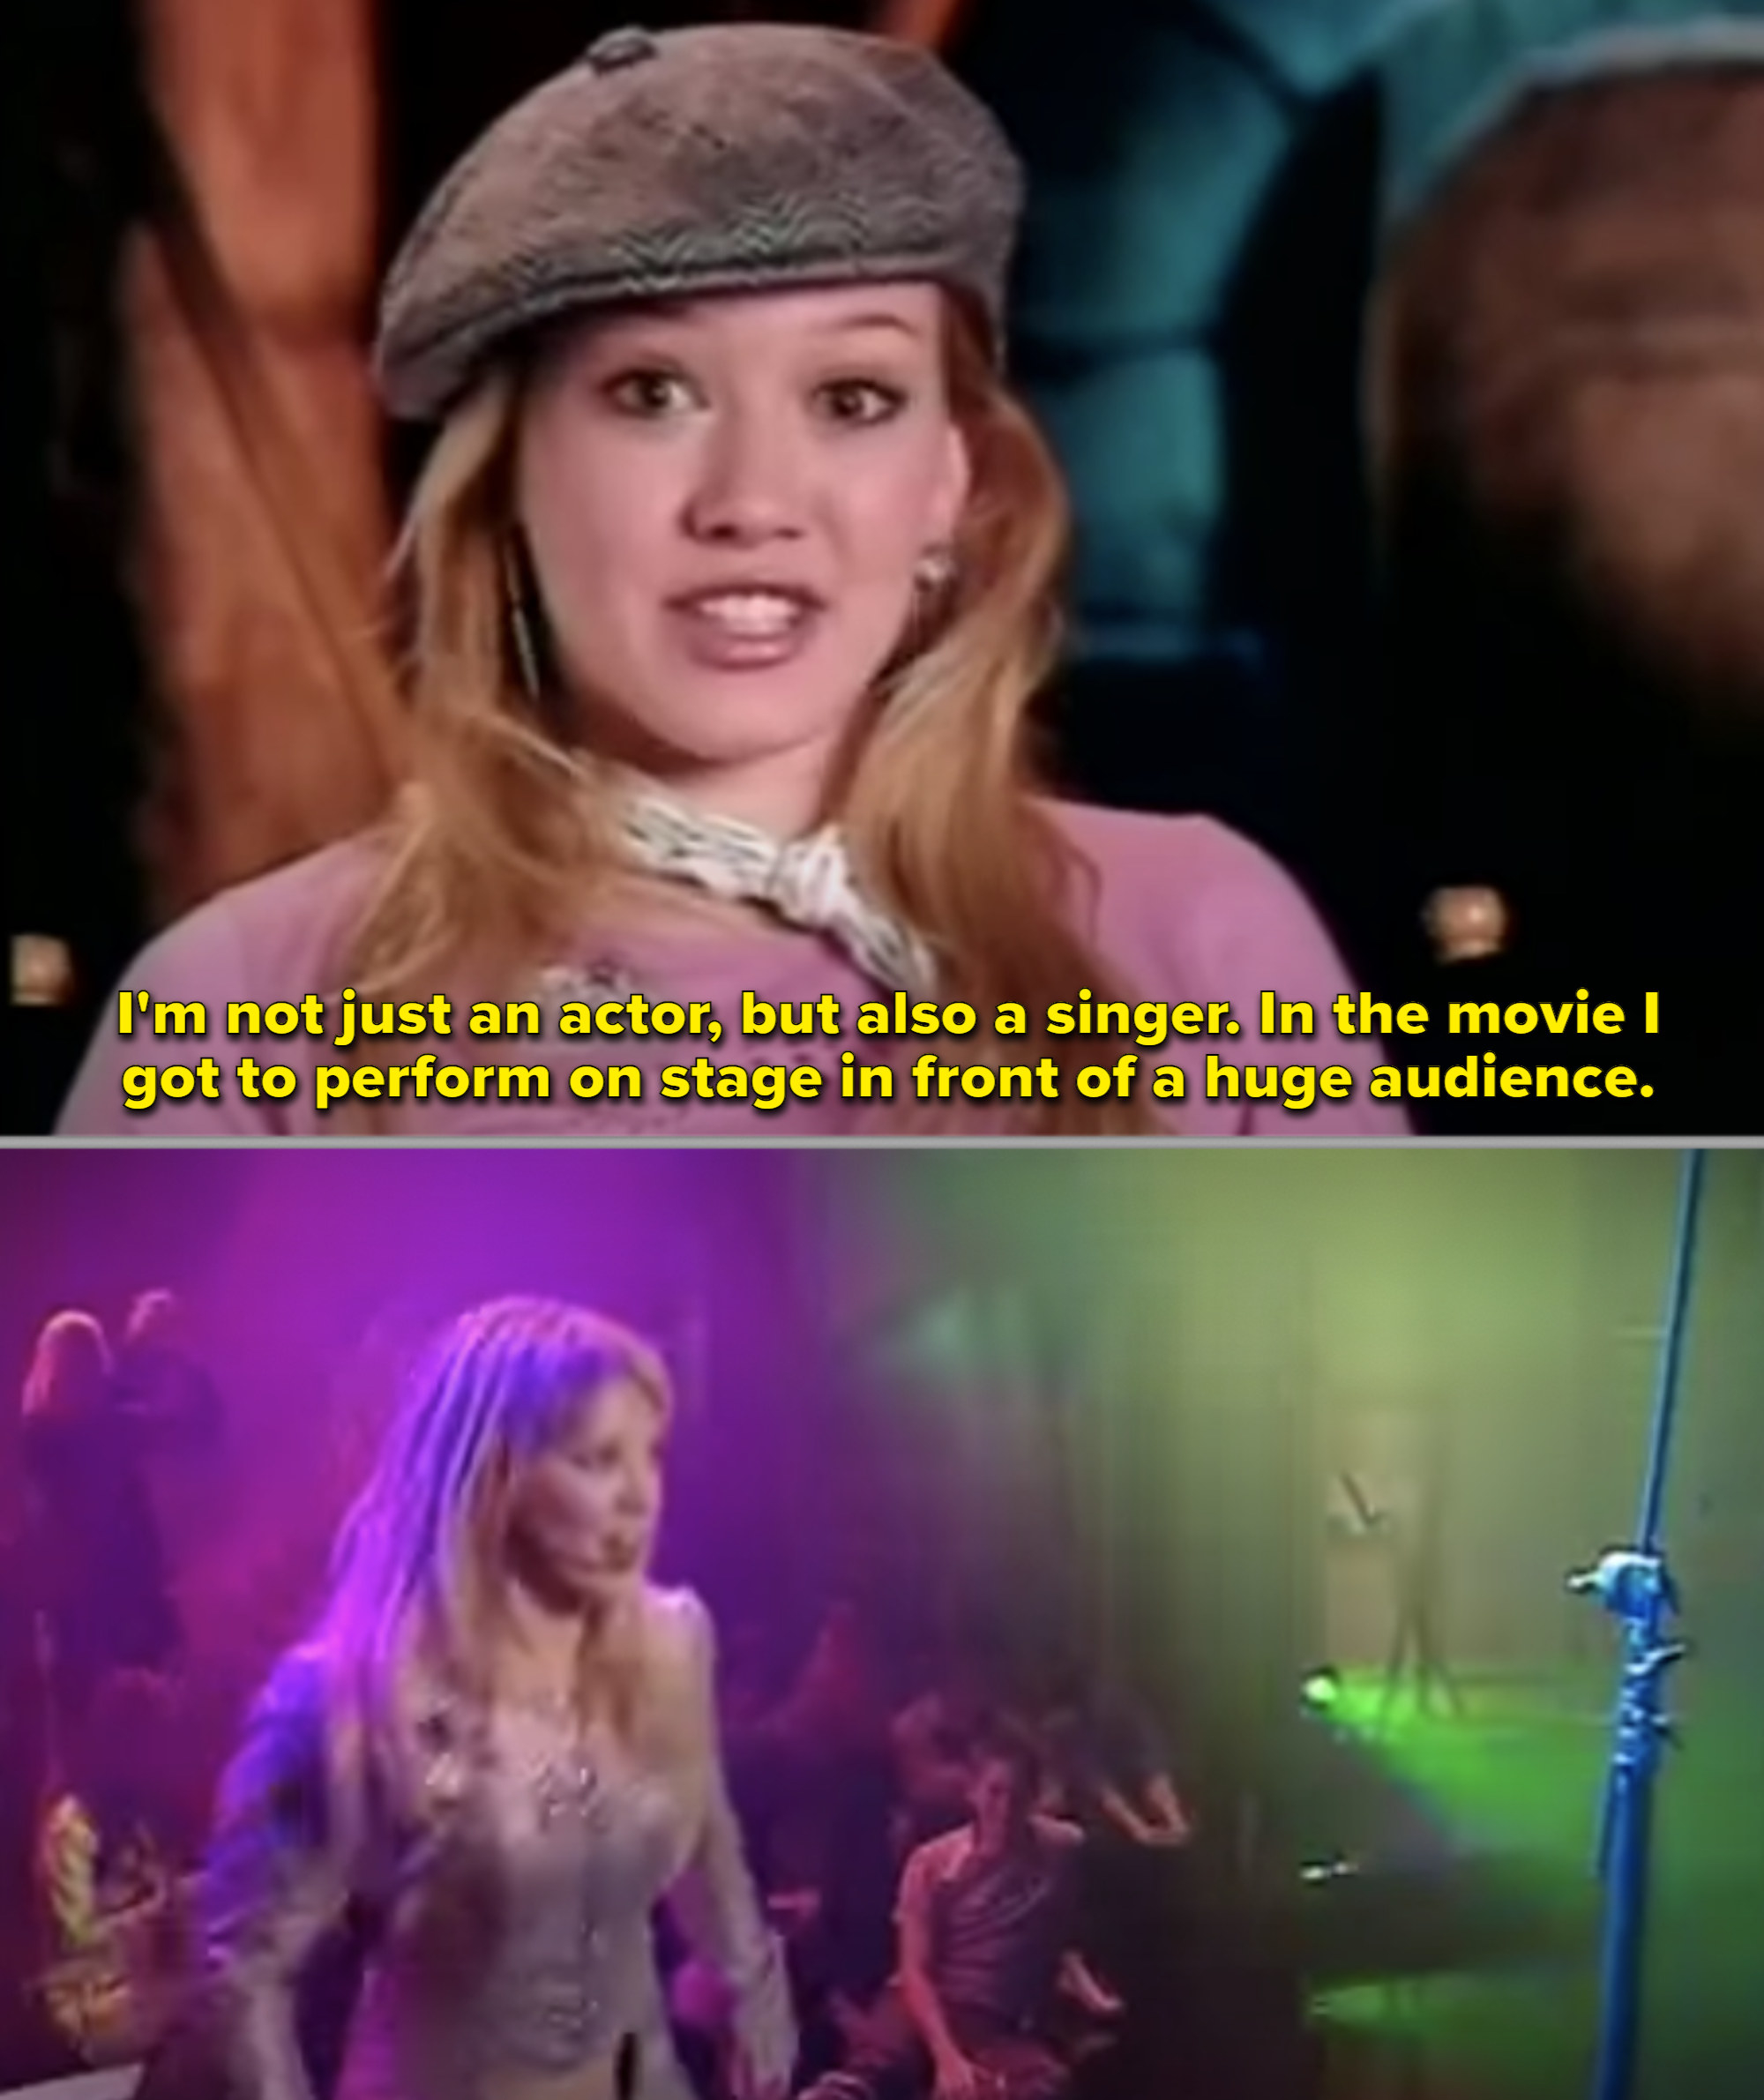 Hilary singing in the behind-the-scenes commentary on set